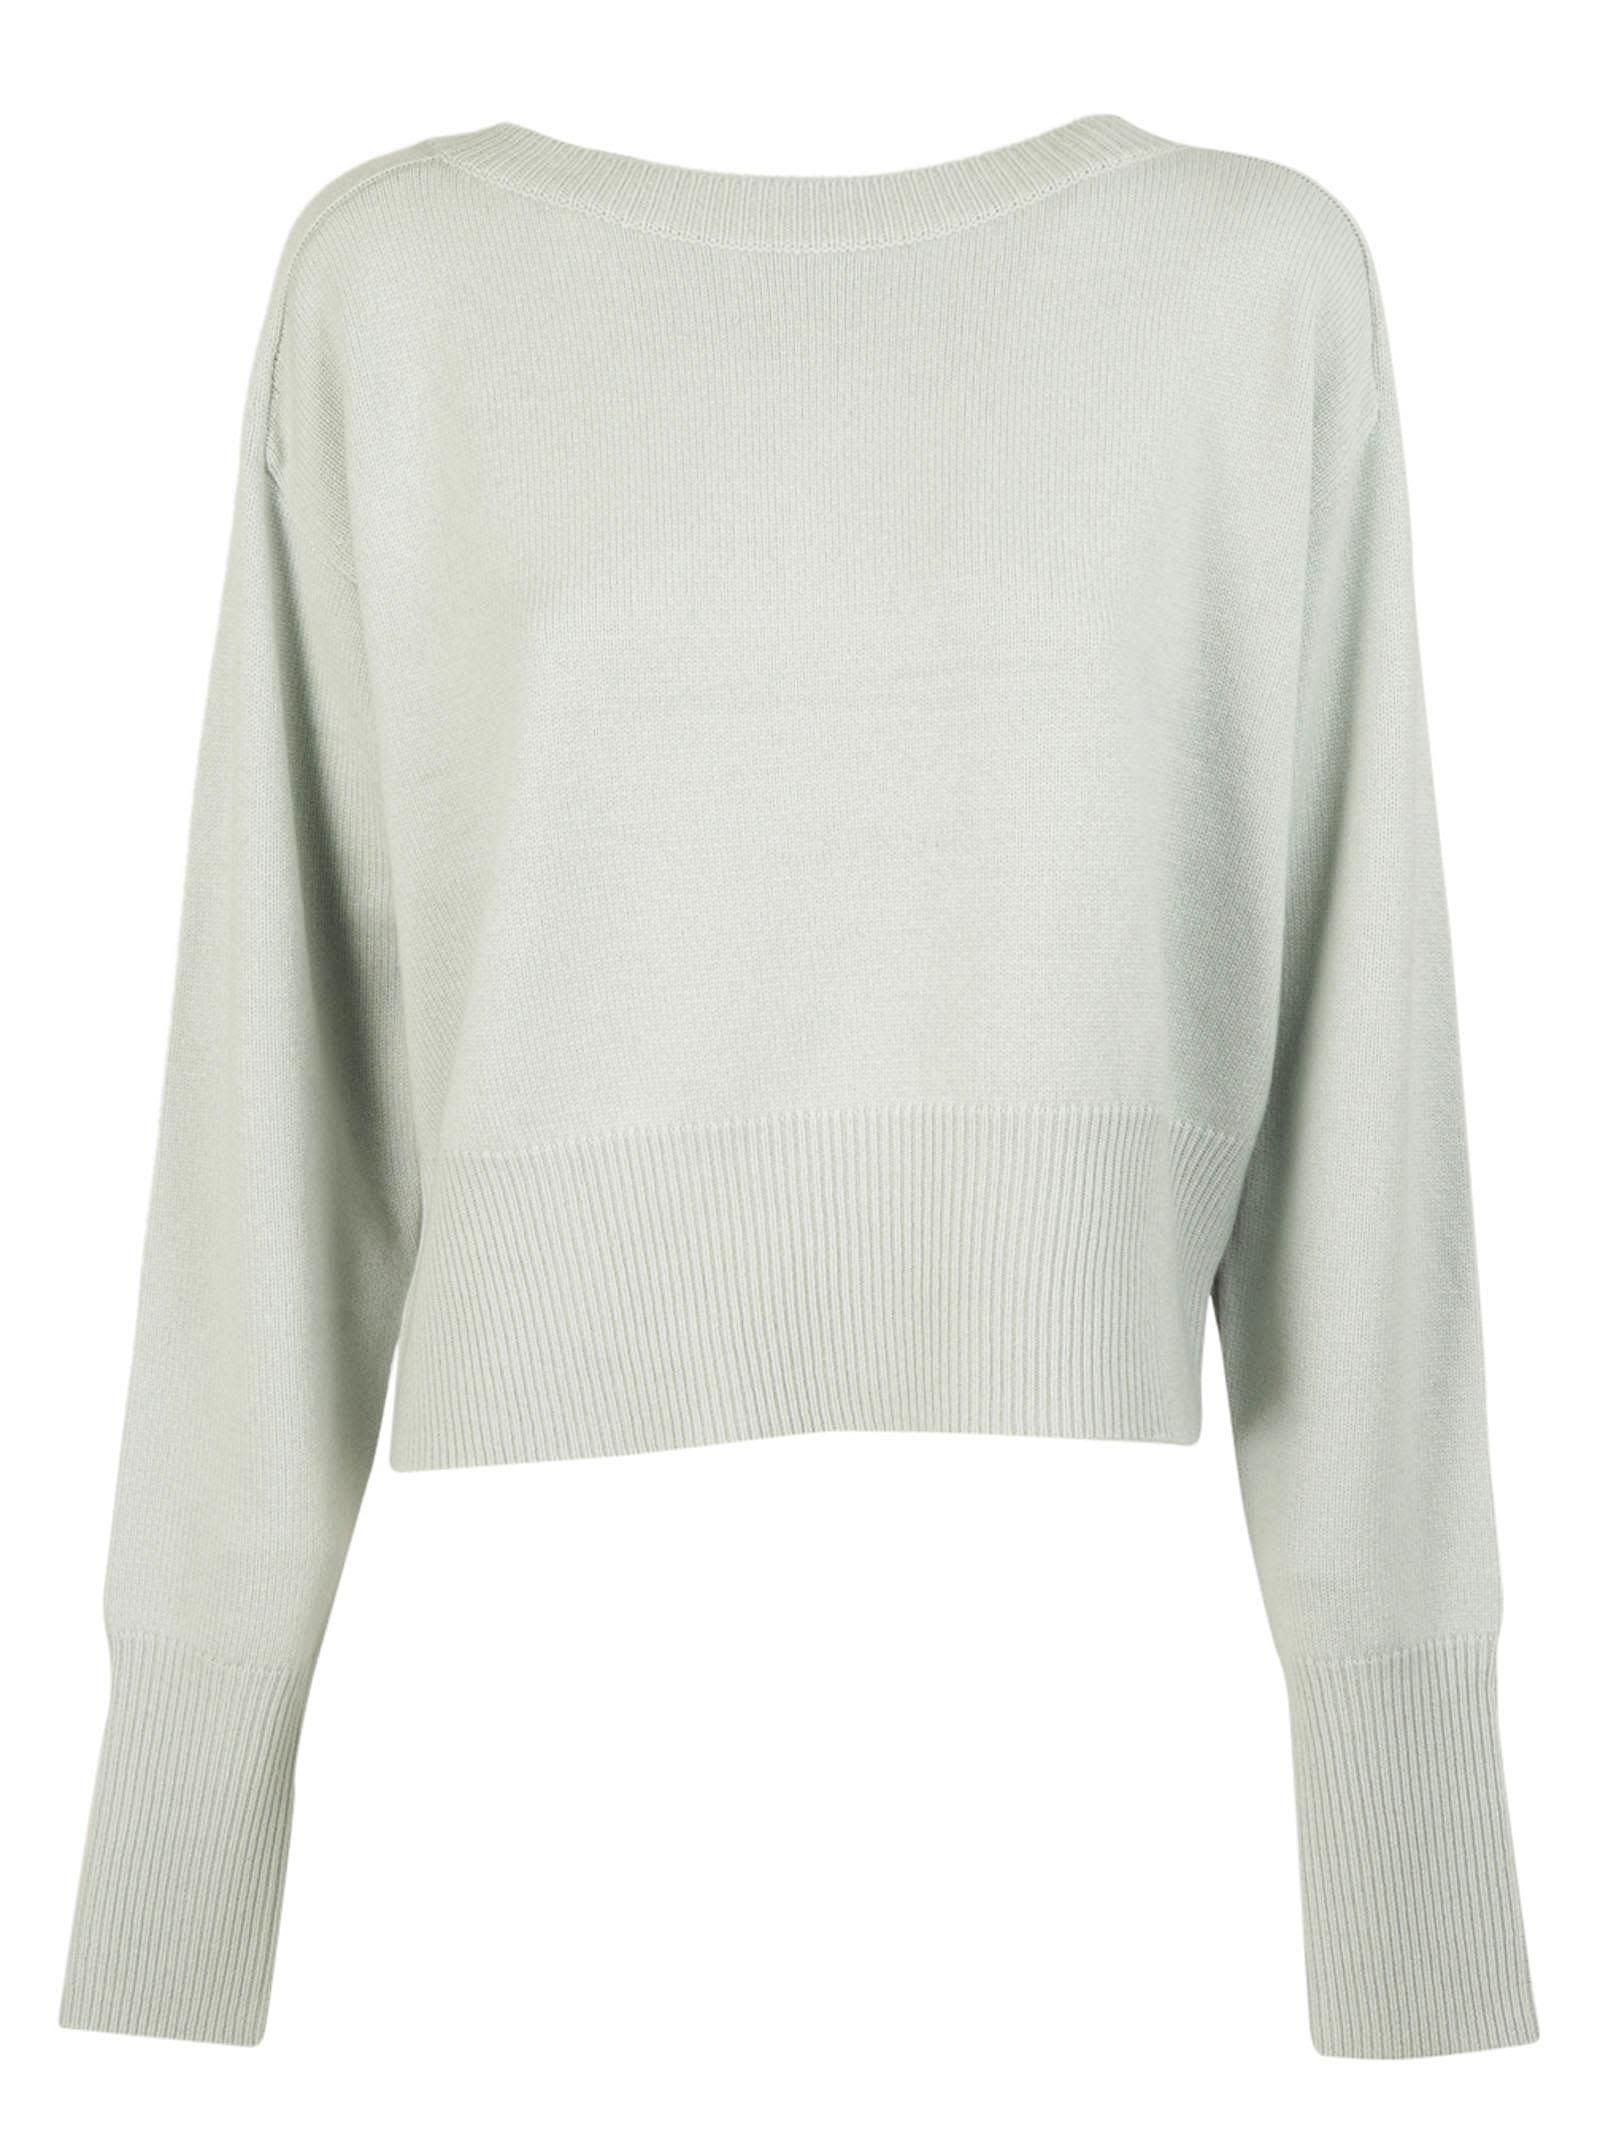 Theory Ribbed Waistband Jumper